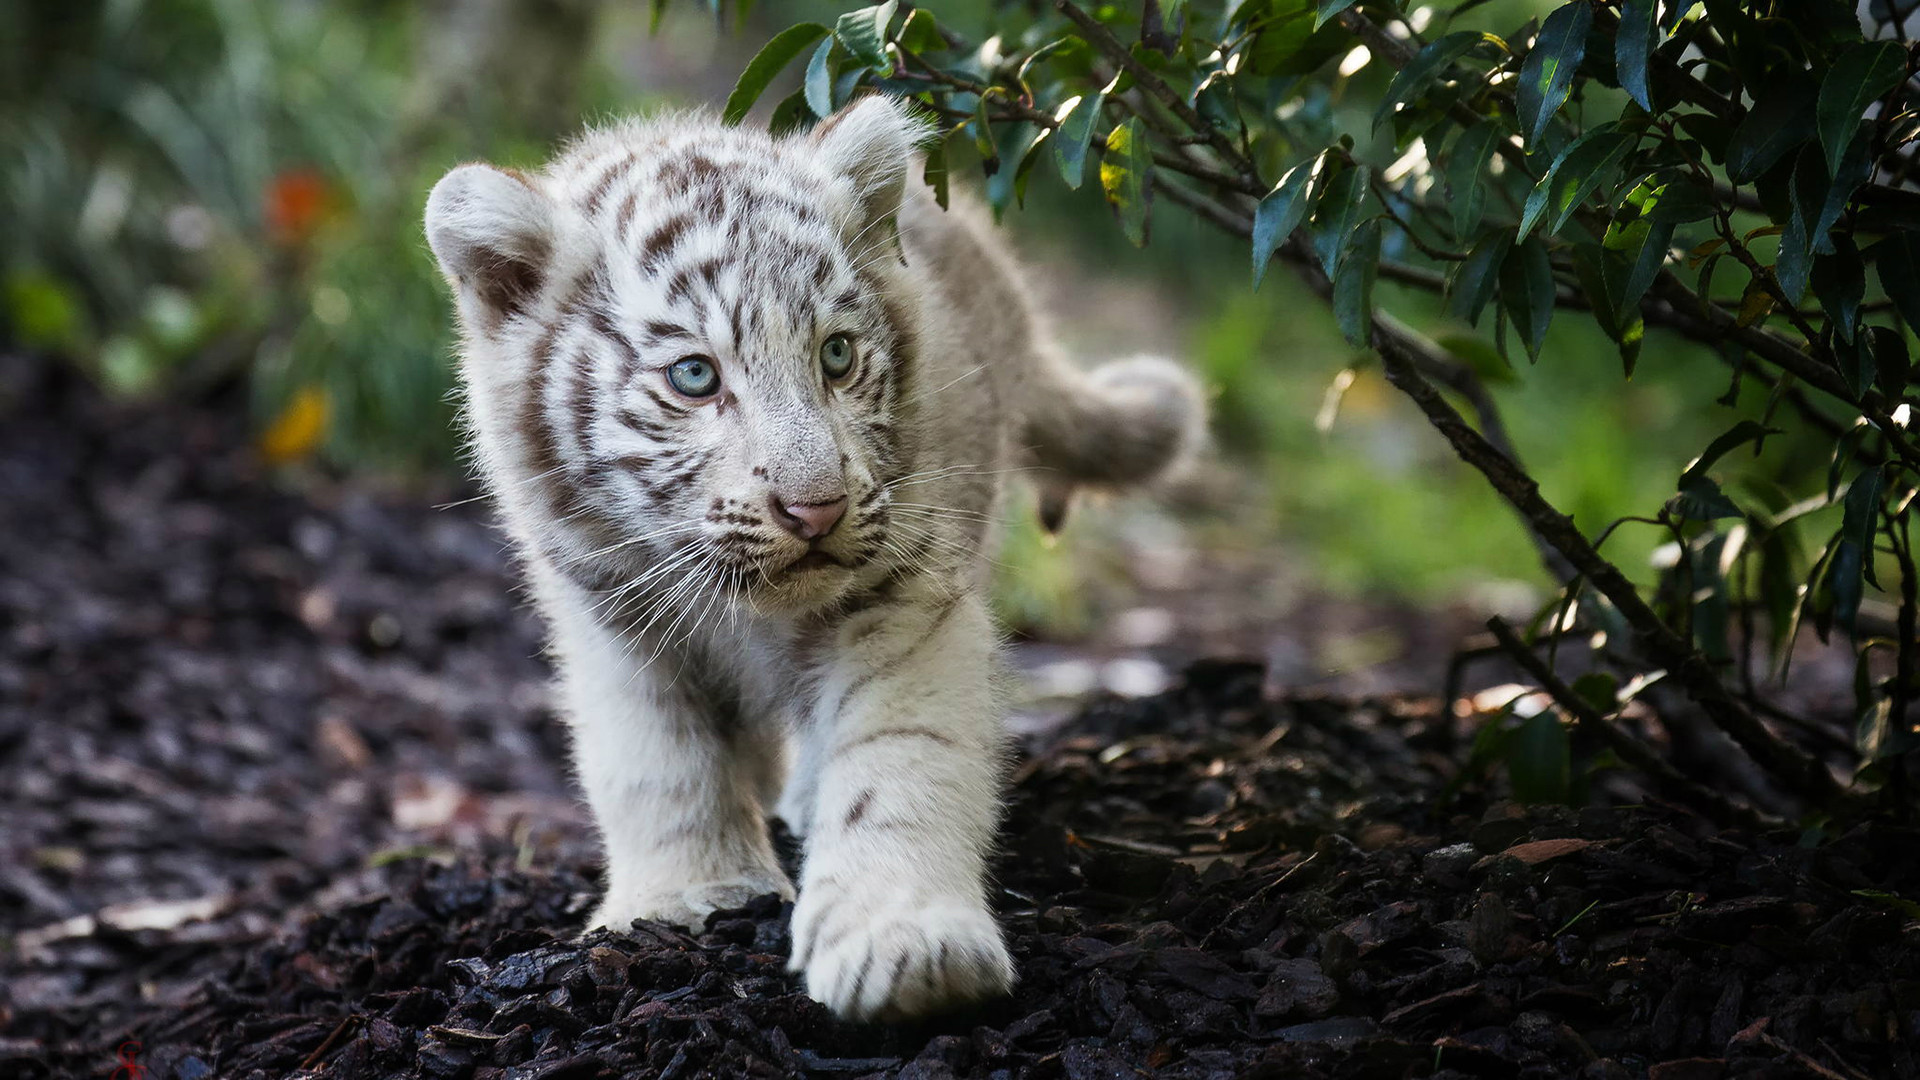 White Tiger Cubs Wallpapers .